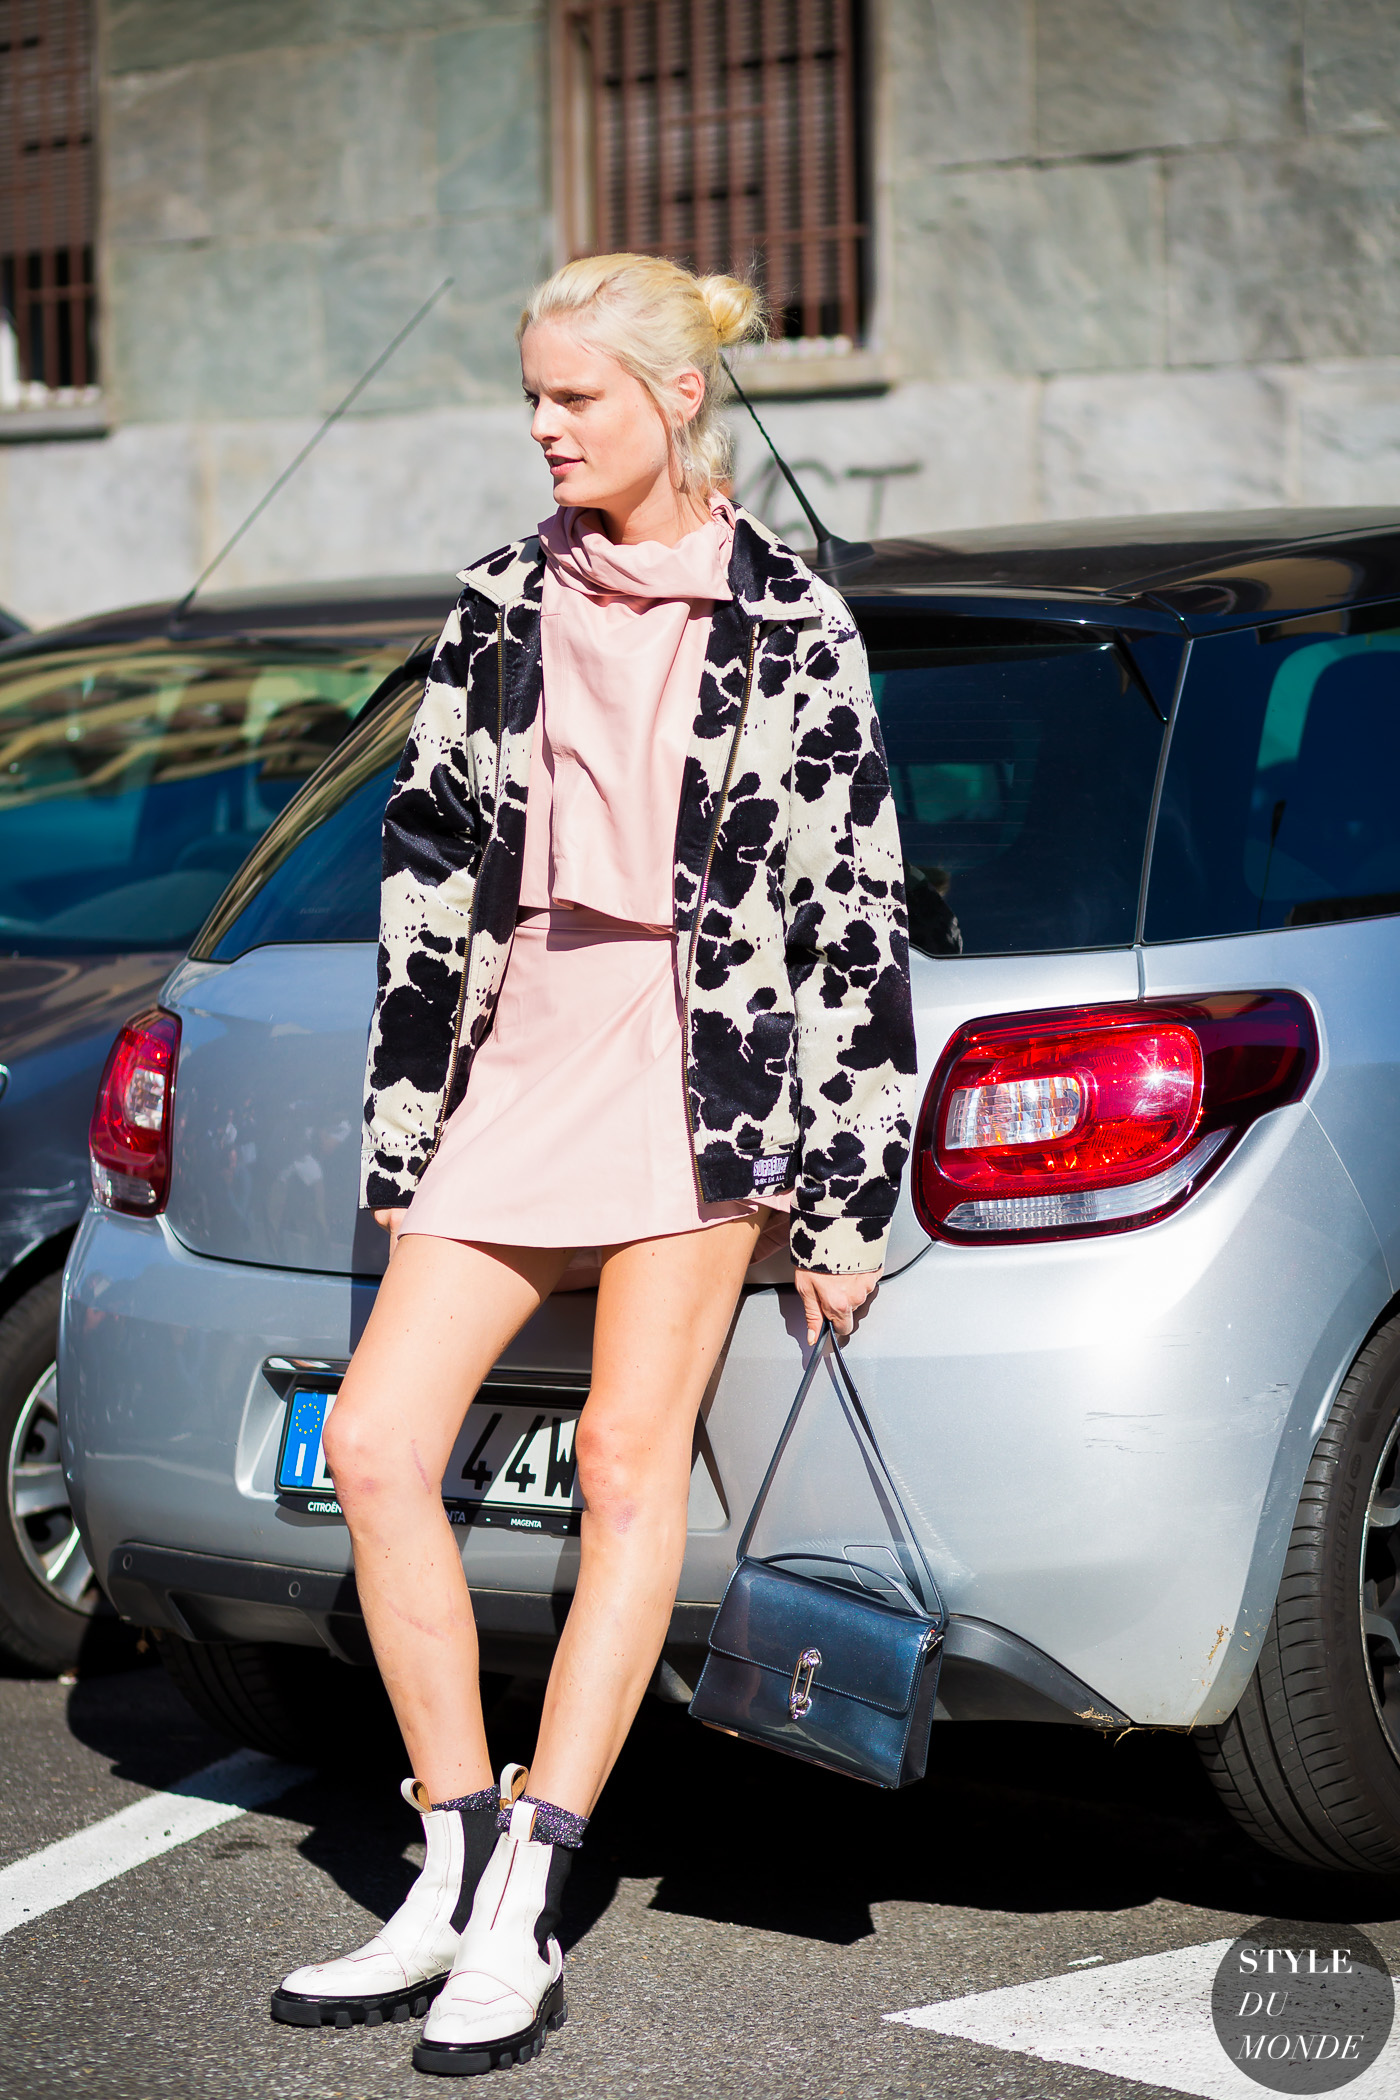 Hanne Gaby Odiele Street Style Street Fashion Streetsnaps by STYLEDUMONDE Street Style Fashion Photography